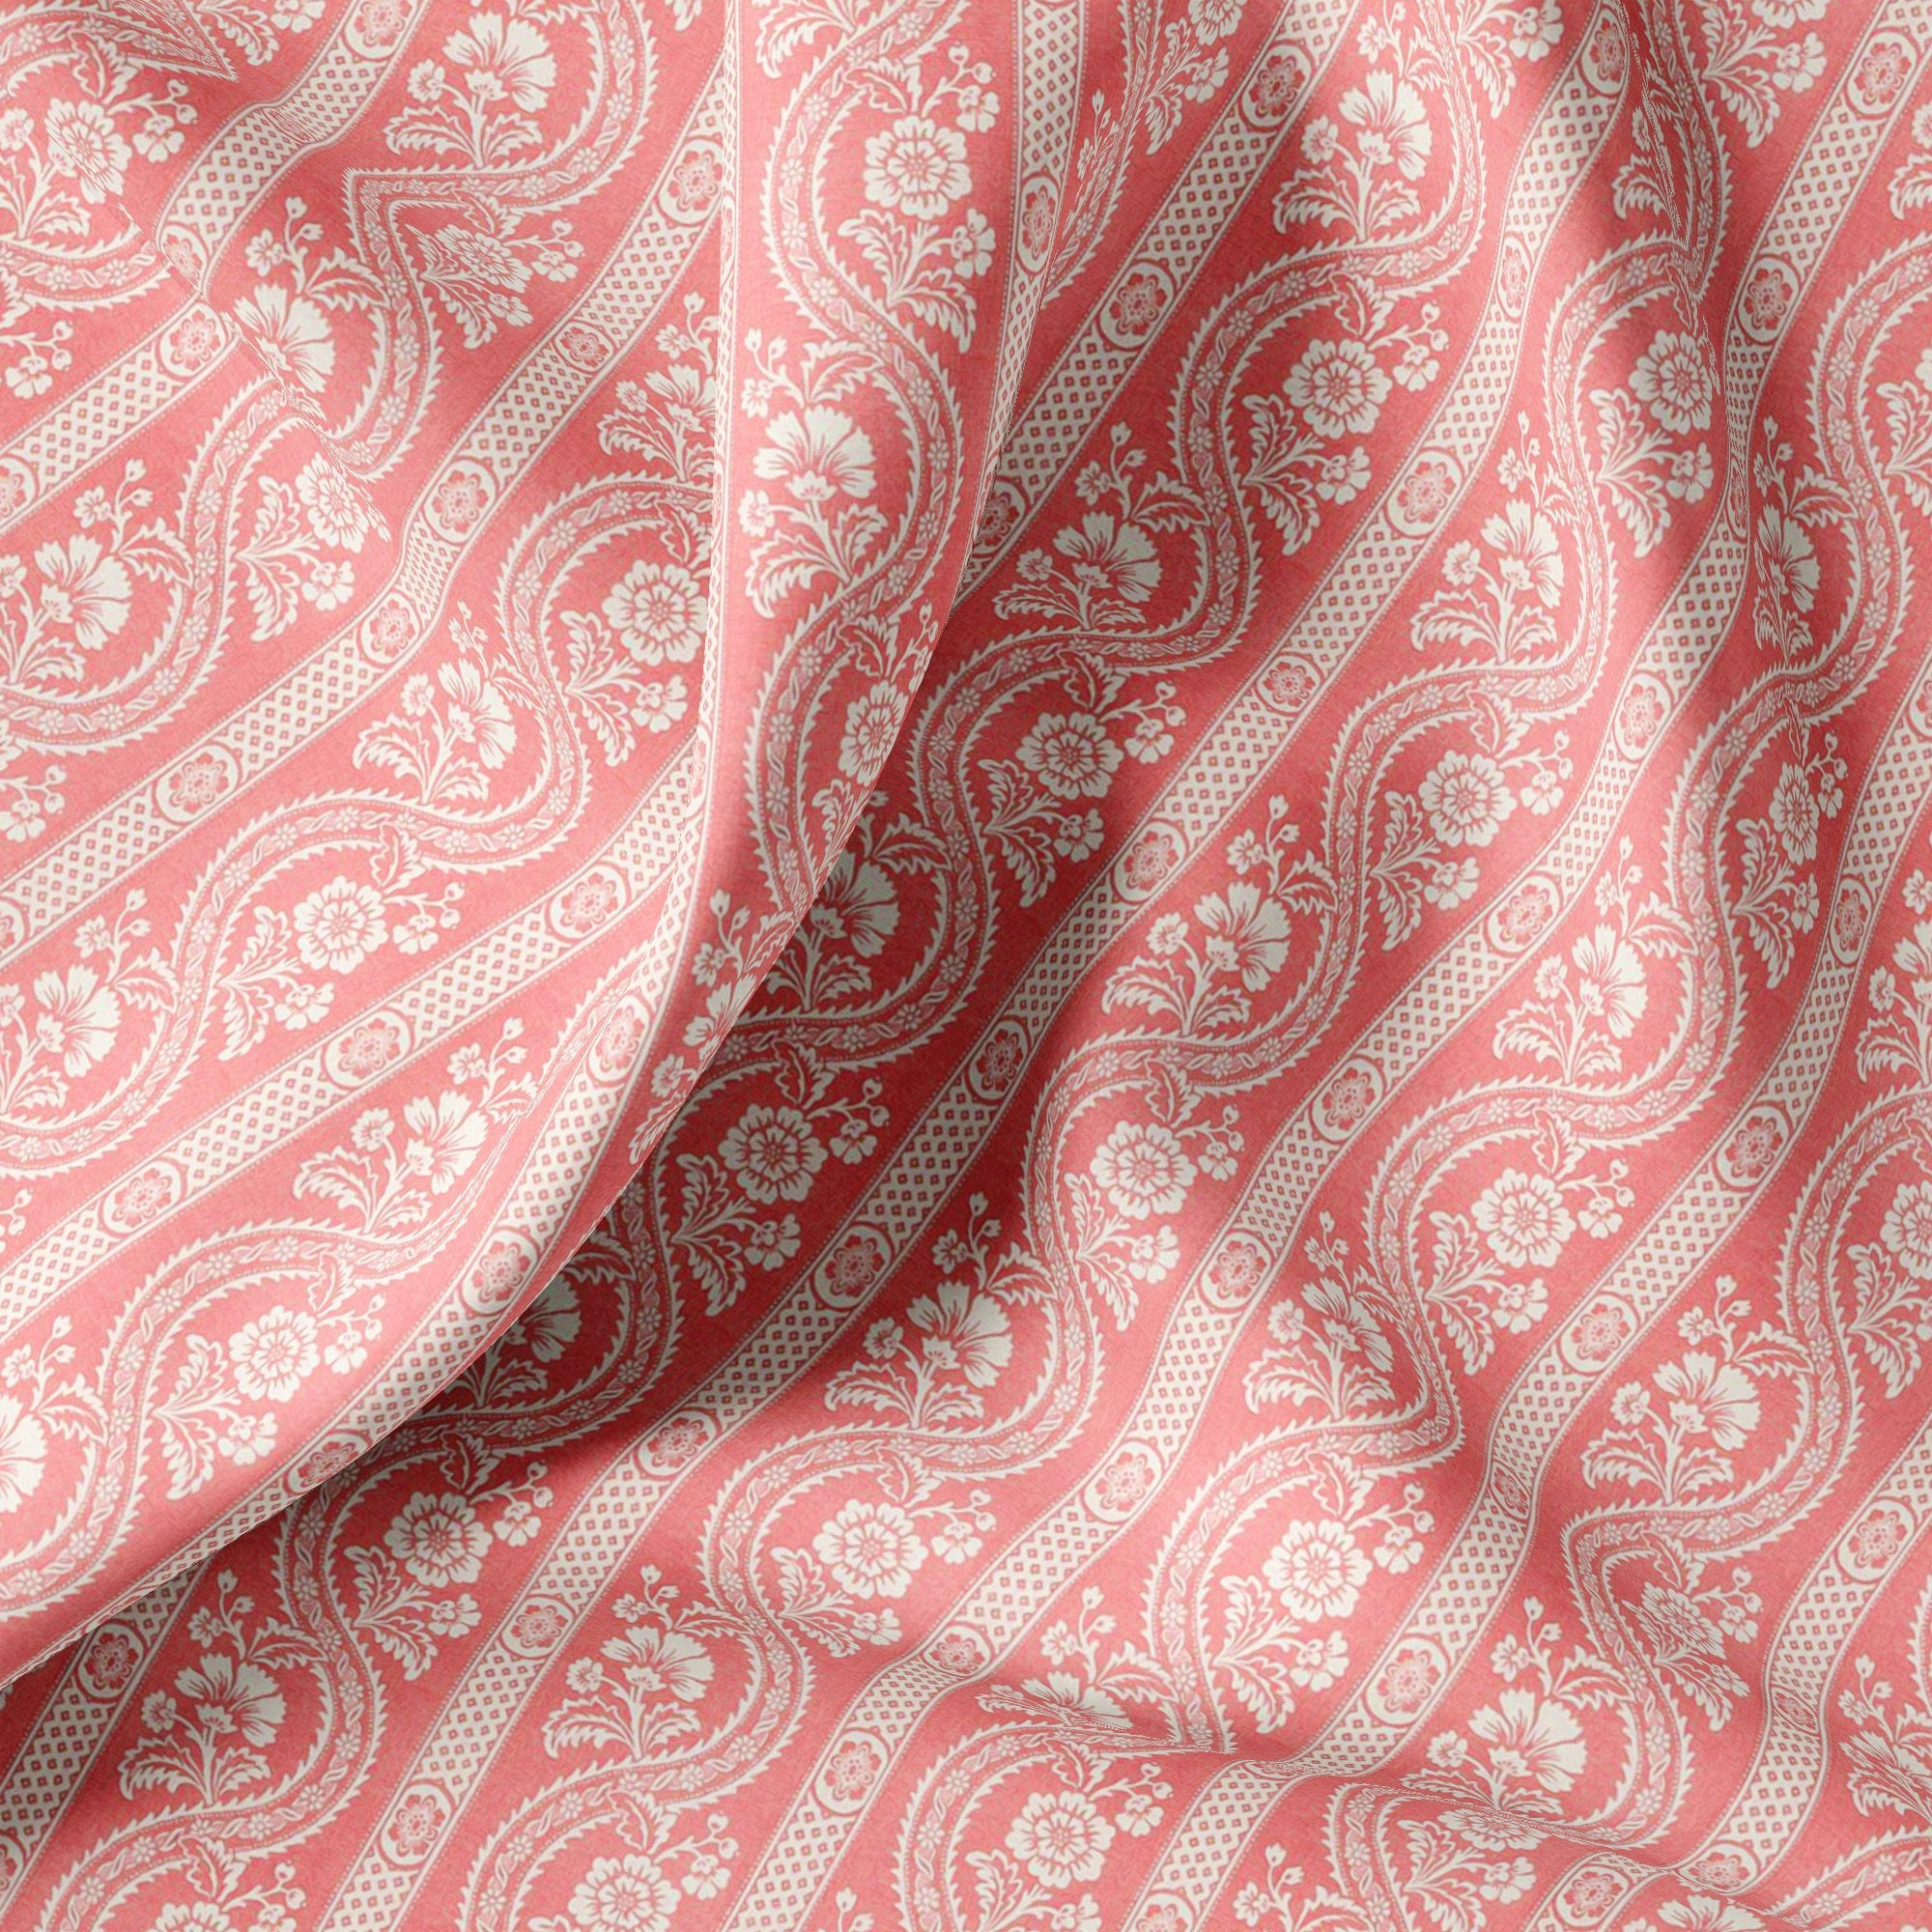 Southwestern Design Digital Printed Fabric - FAB VOGUE Studio. Shop Fabric @ www.fabvoguestudio.com